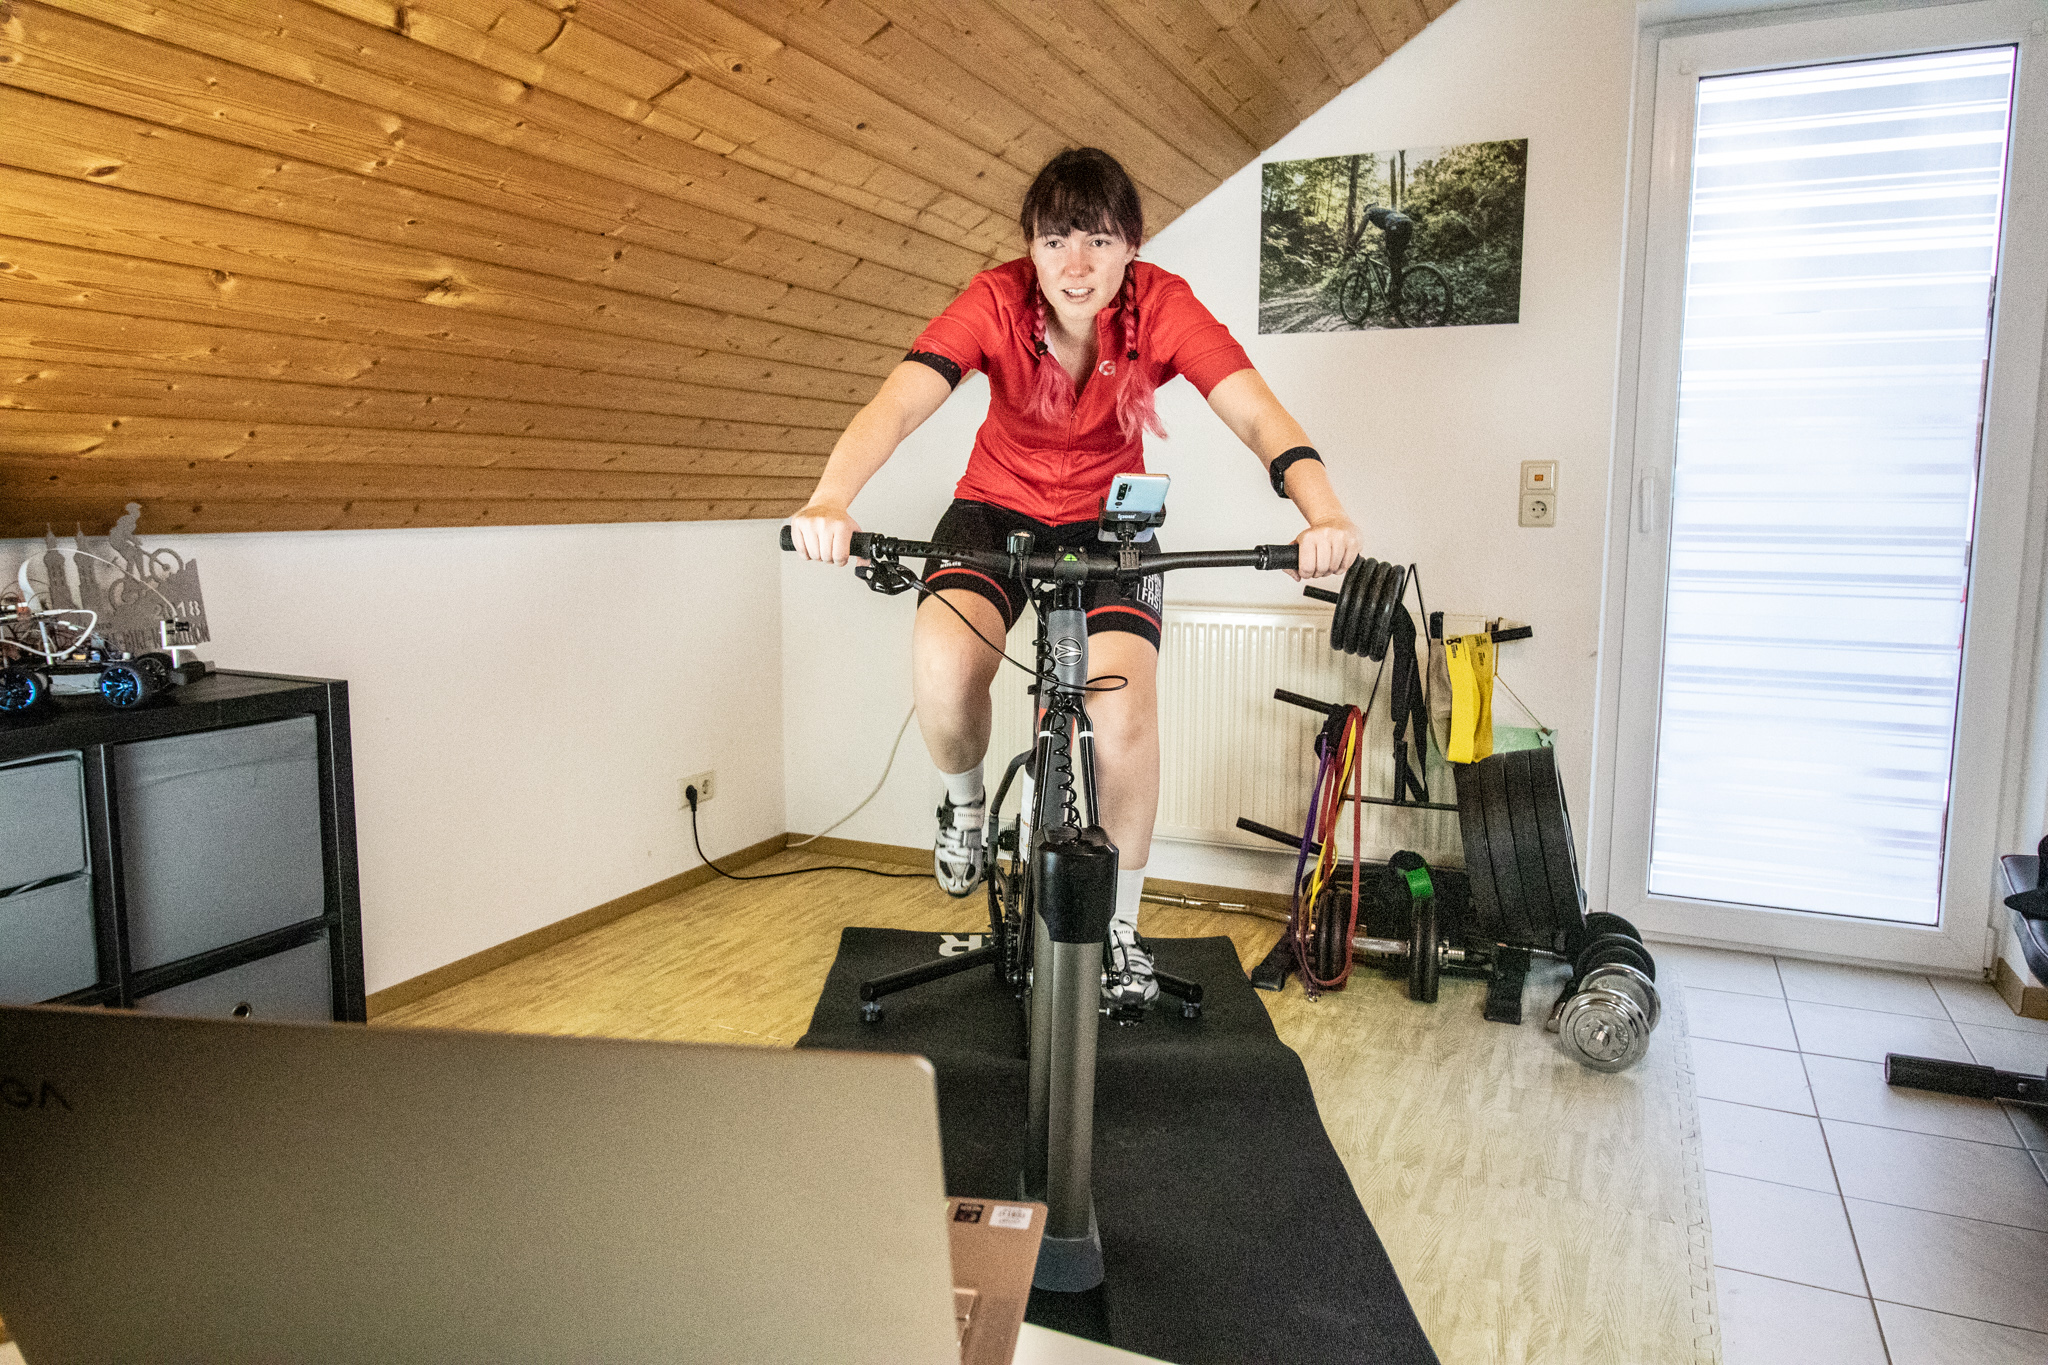 Smarttrainer Software Test Wahoo Kickr Erfahrungen 089